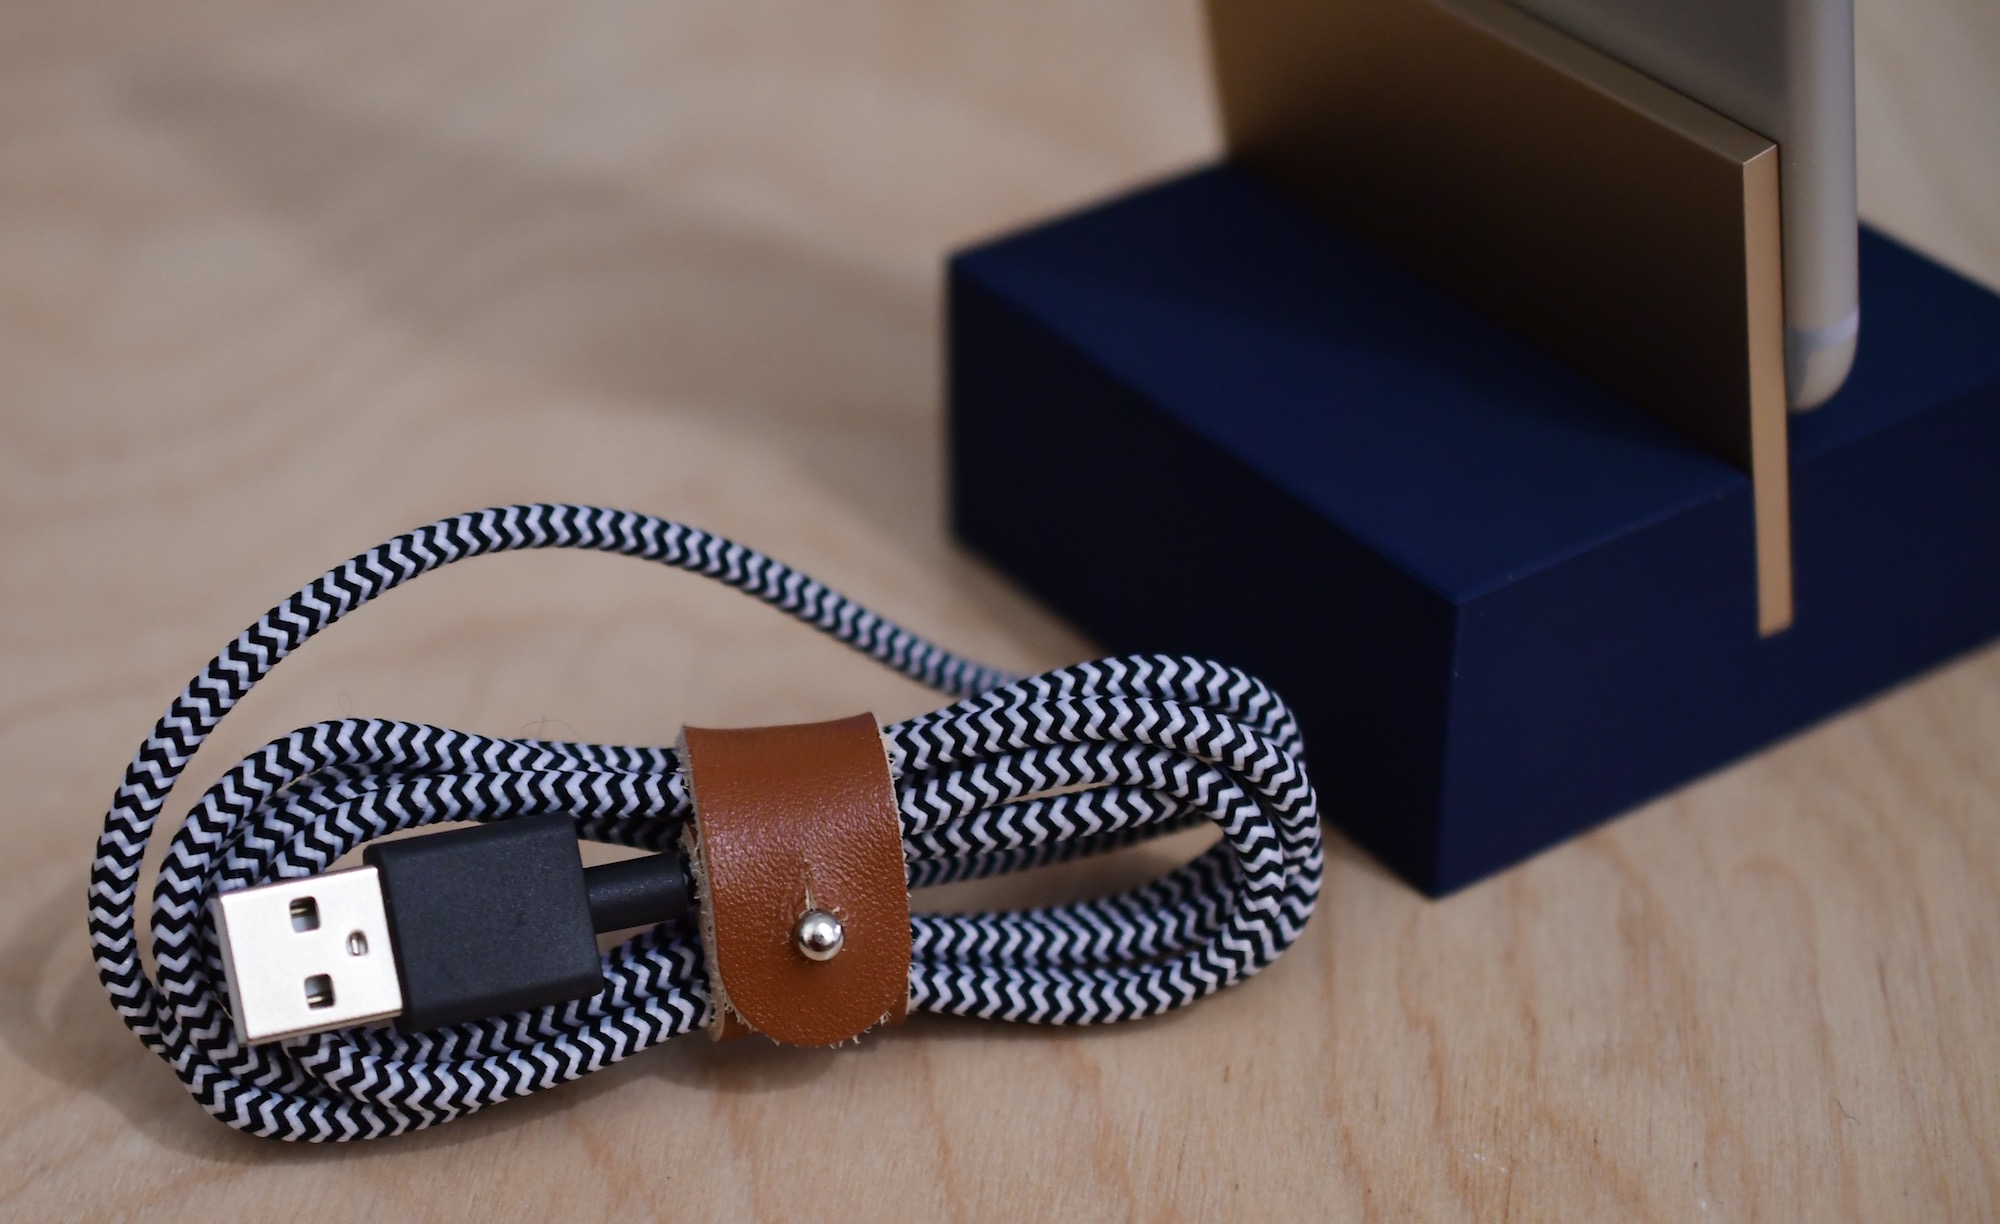 Native Union Belt Cable